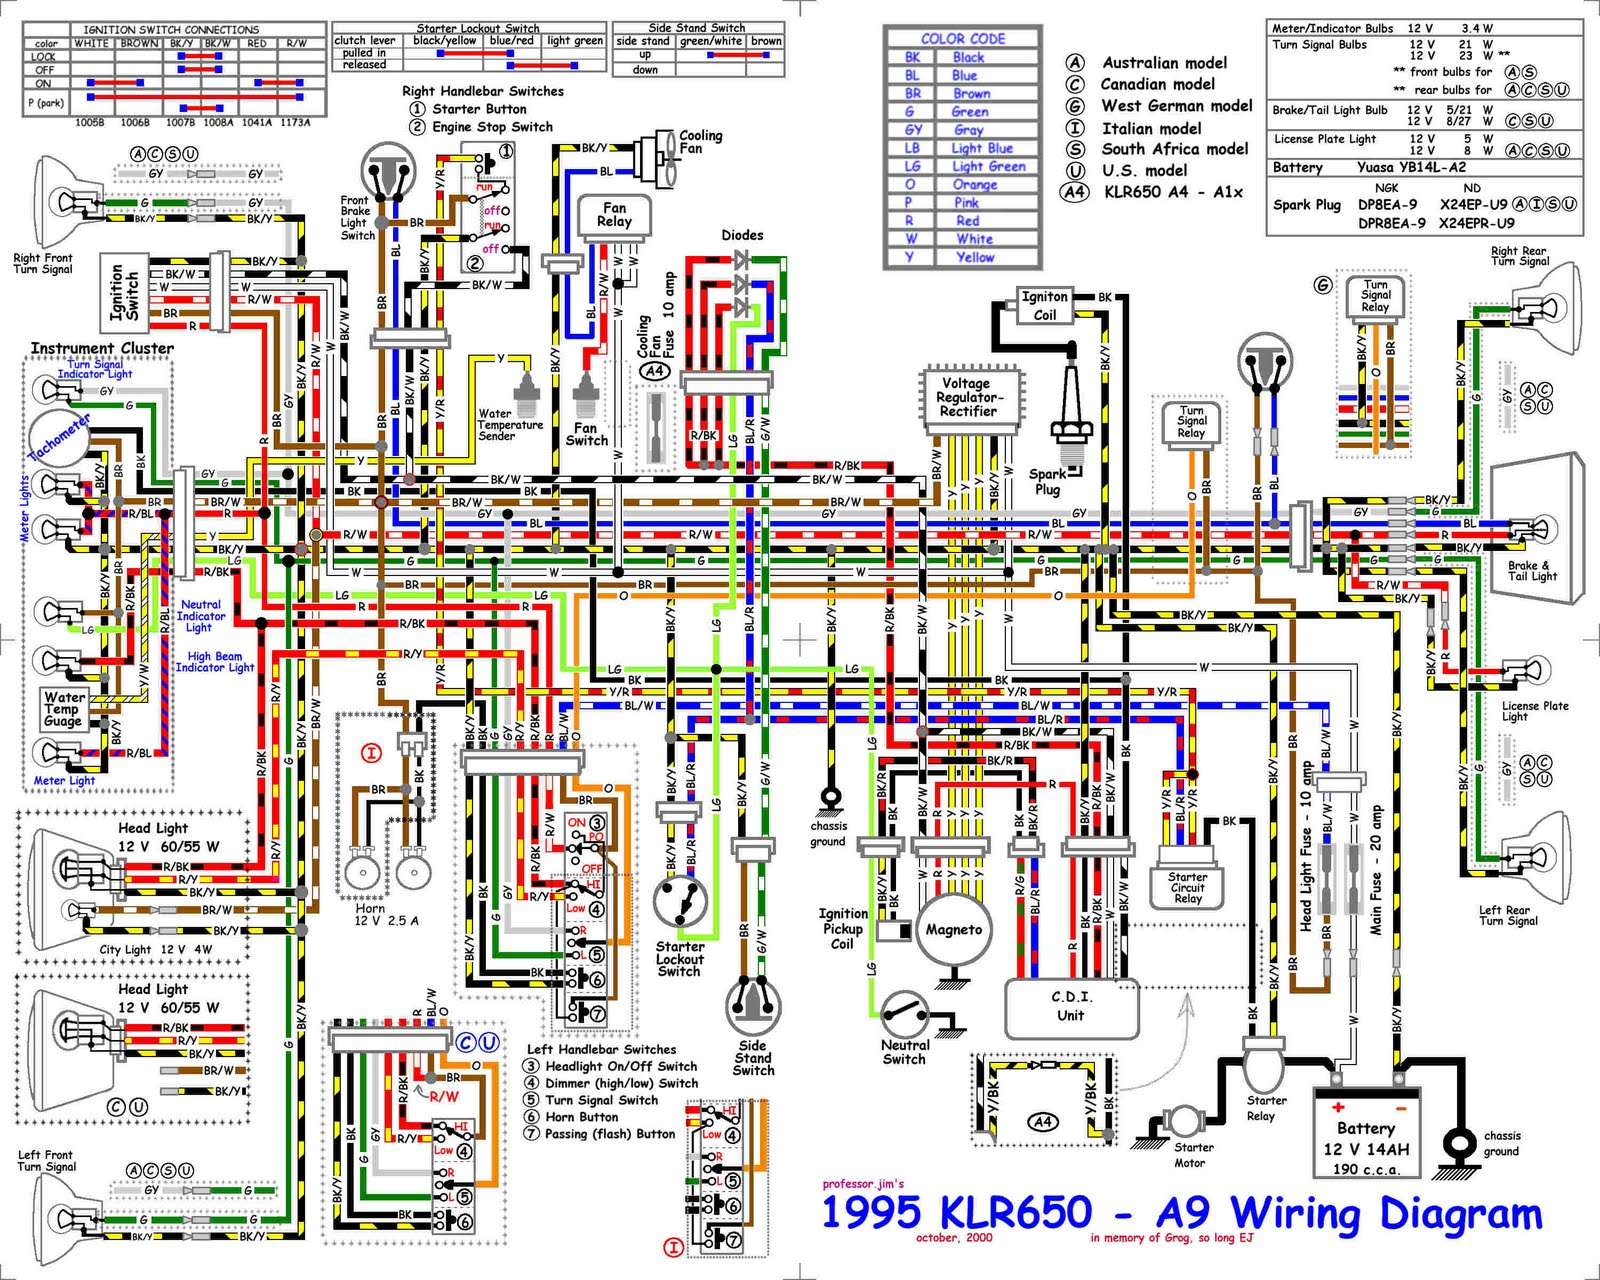 76 monte carlo wiring diagram simple wiring diagrams 1985 monte carlo wiring diagram 1974 monte carlo wiring diagram [ 1600 x 1280 Pixel ]